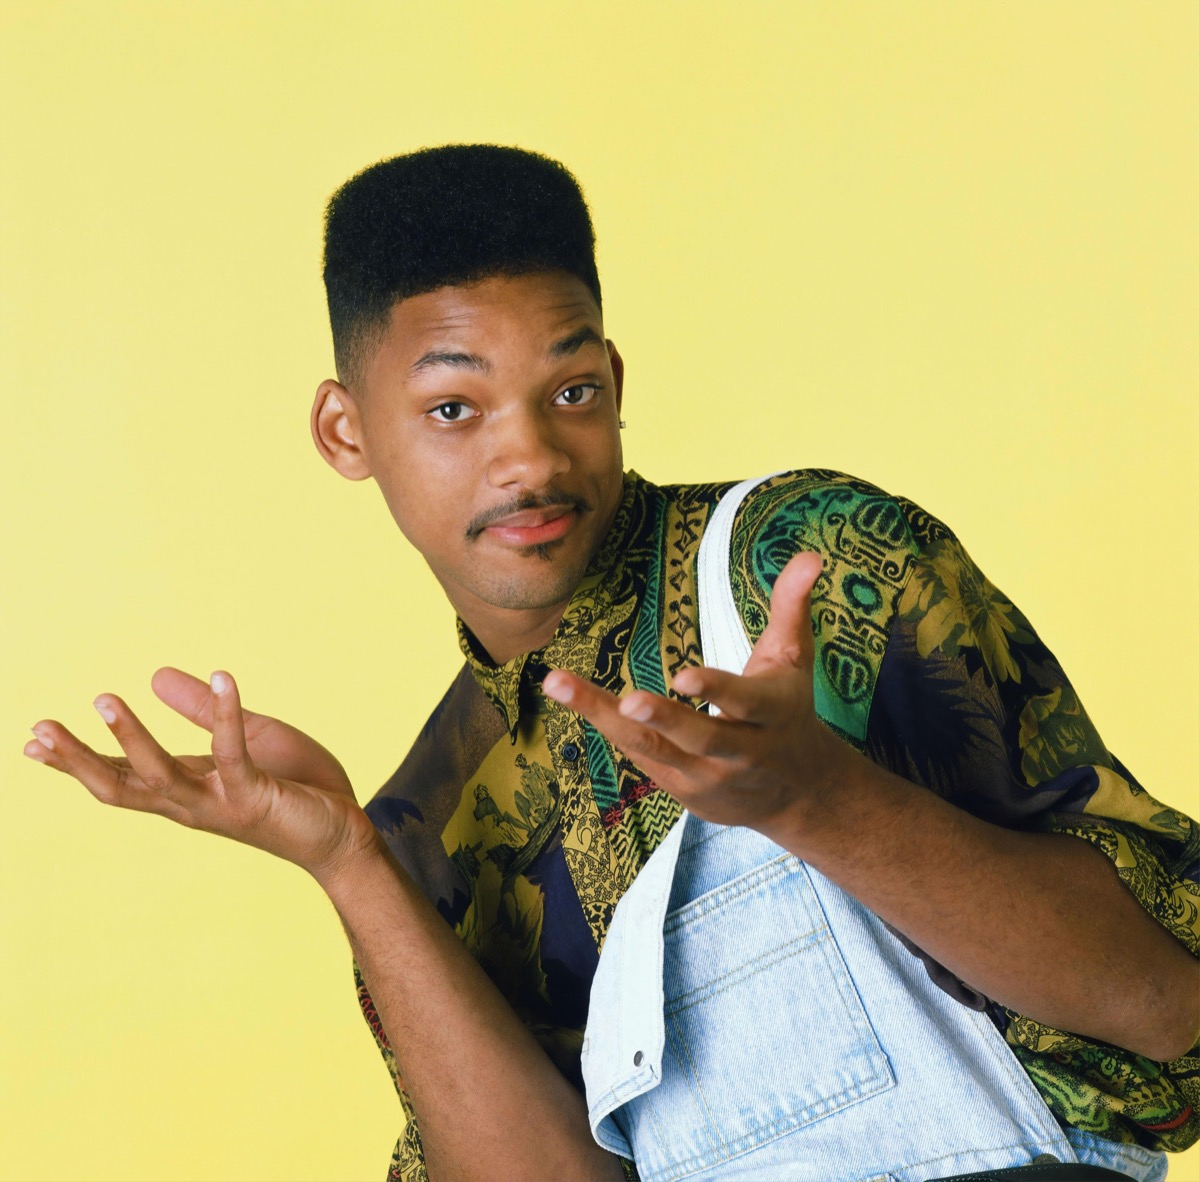 fresh prince, will smith wears overalls, 1990s fashion